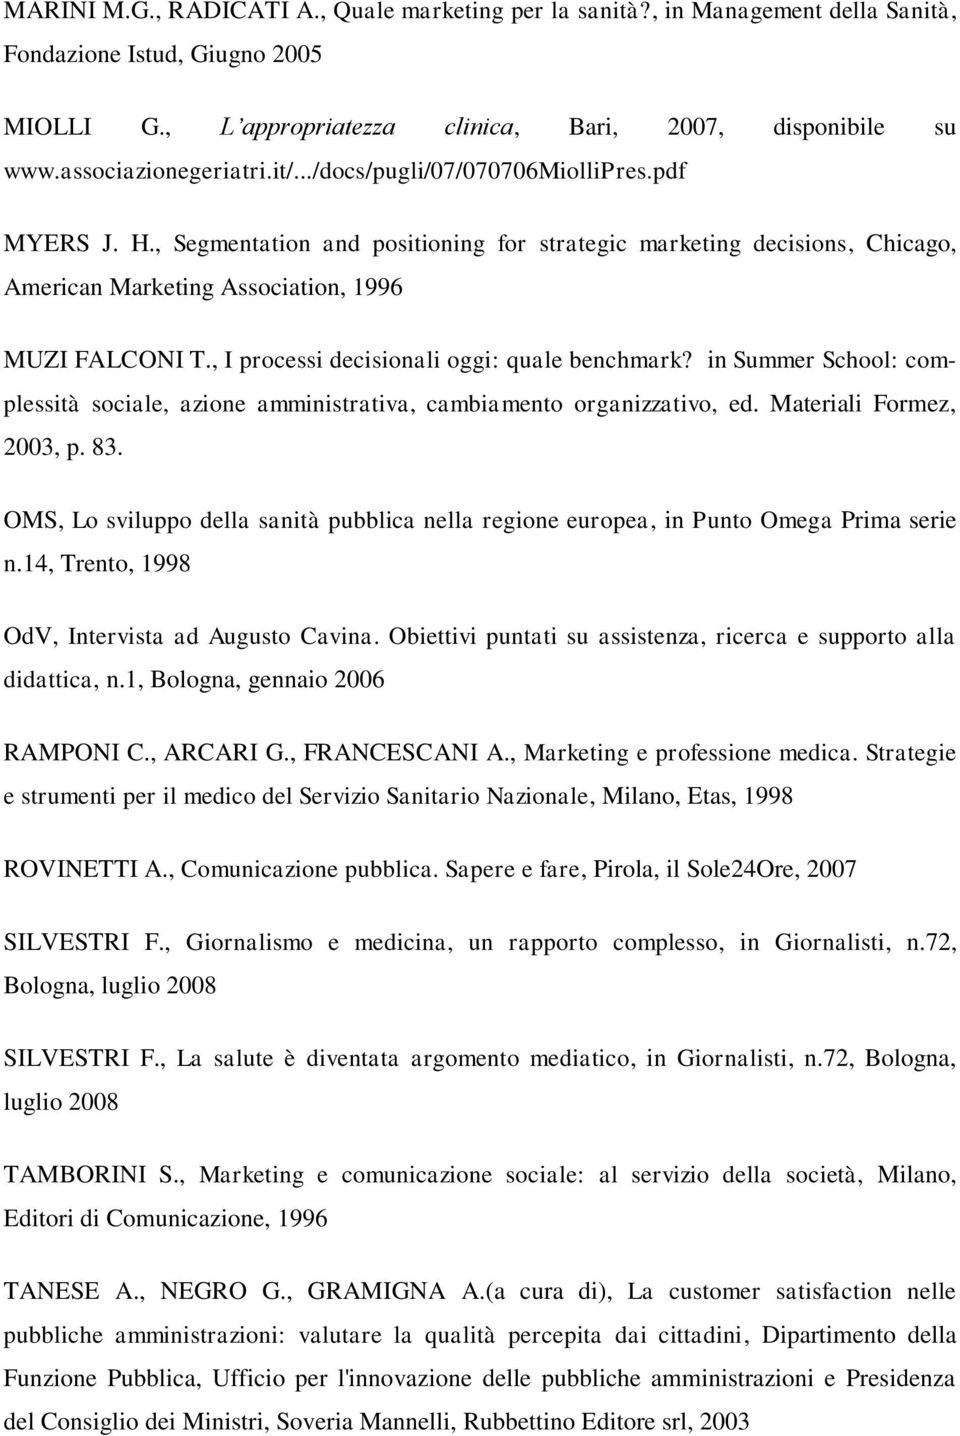 , Segmentation and positioning for strategic marketing decisions, Chicago, American Marketing Association, 1996 MUZI FALCONI T., I processi decisionali oggi: quale benchmark?